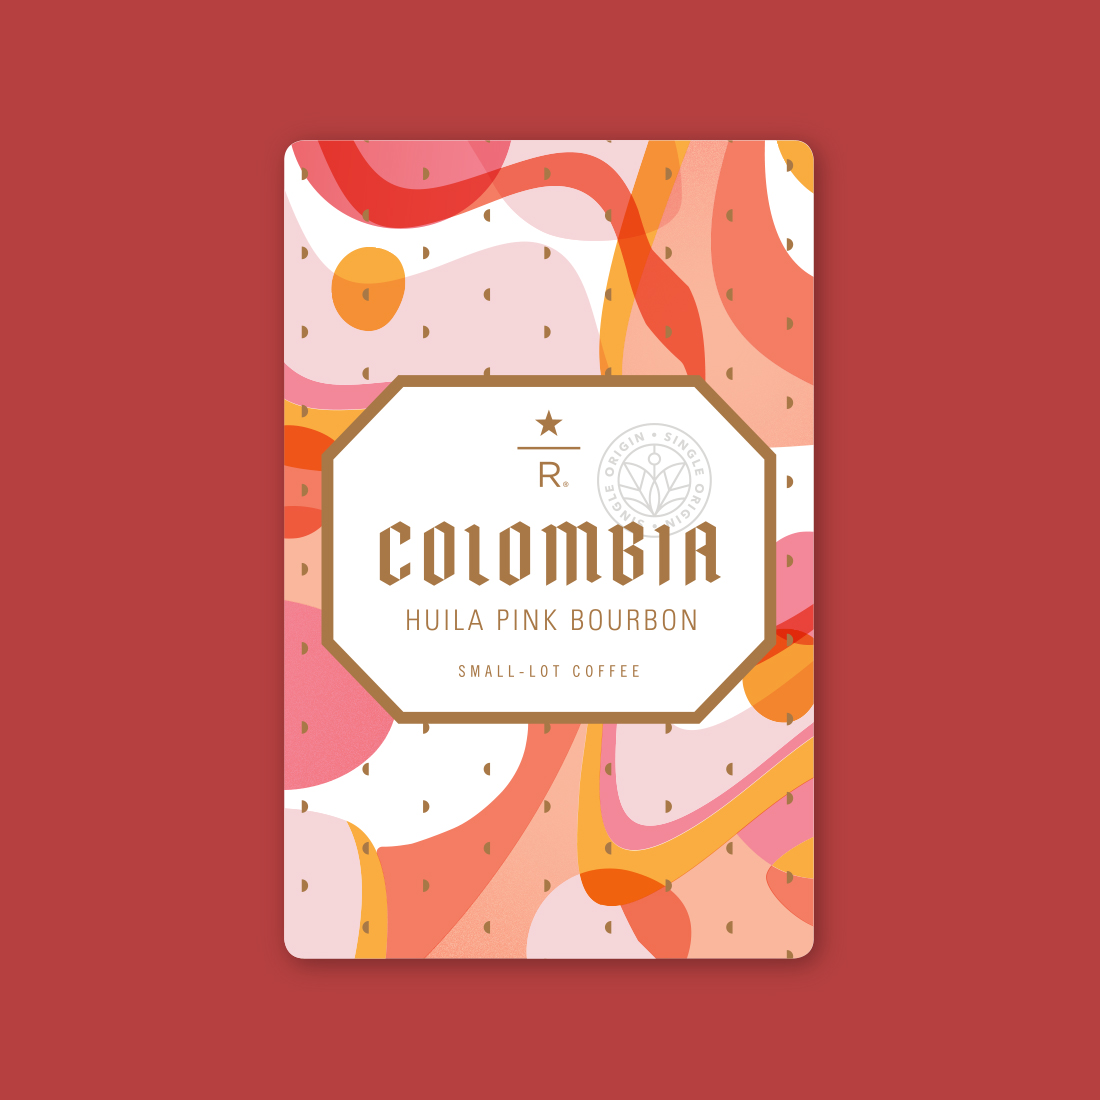 Coffee card illustration for COLOMBIA HUILA PINK BOURBON